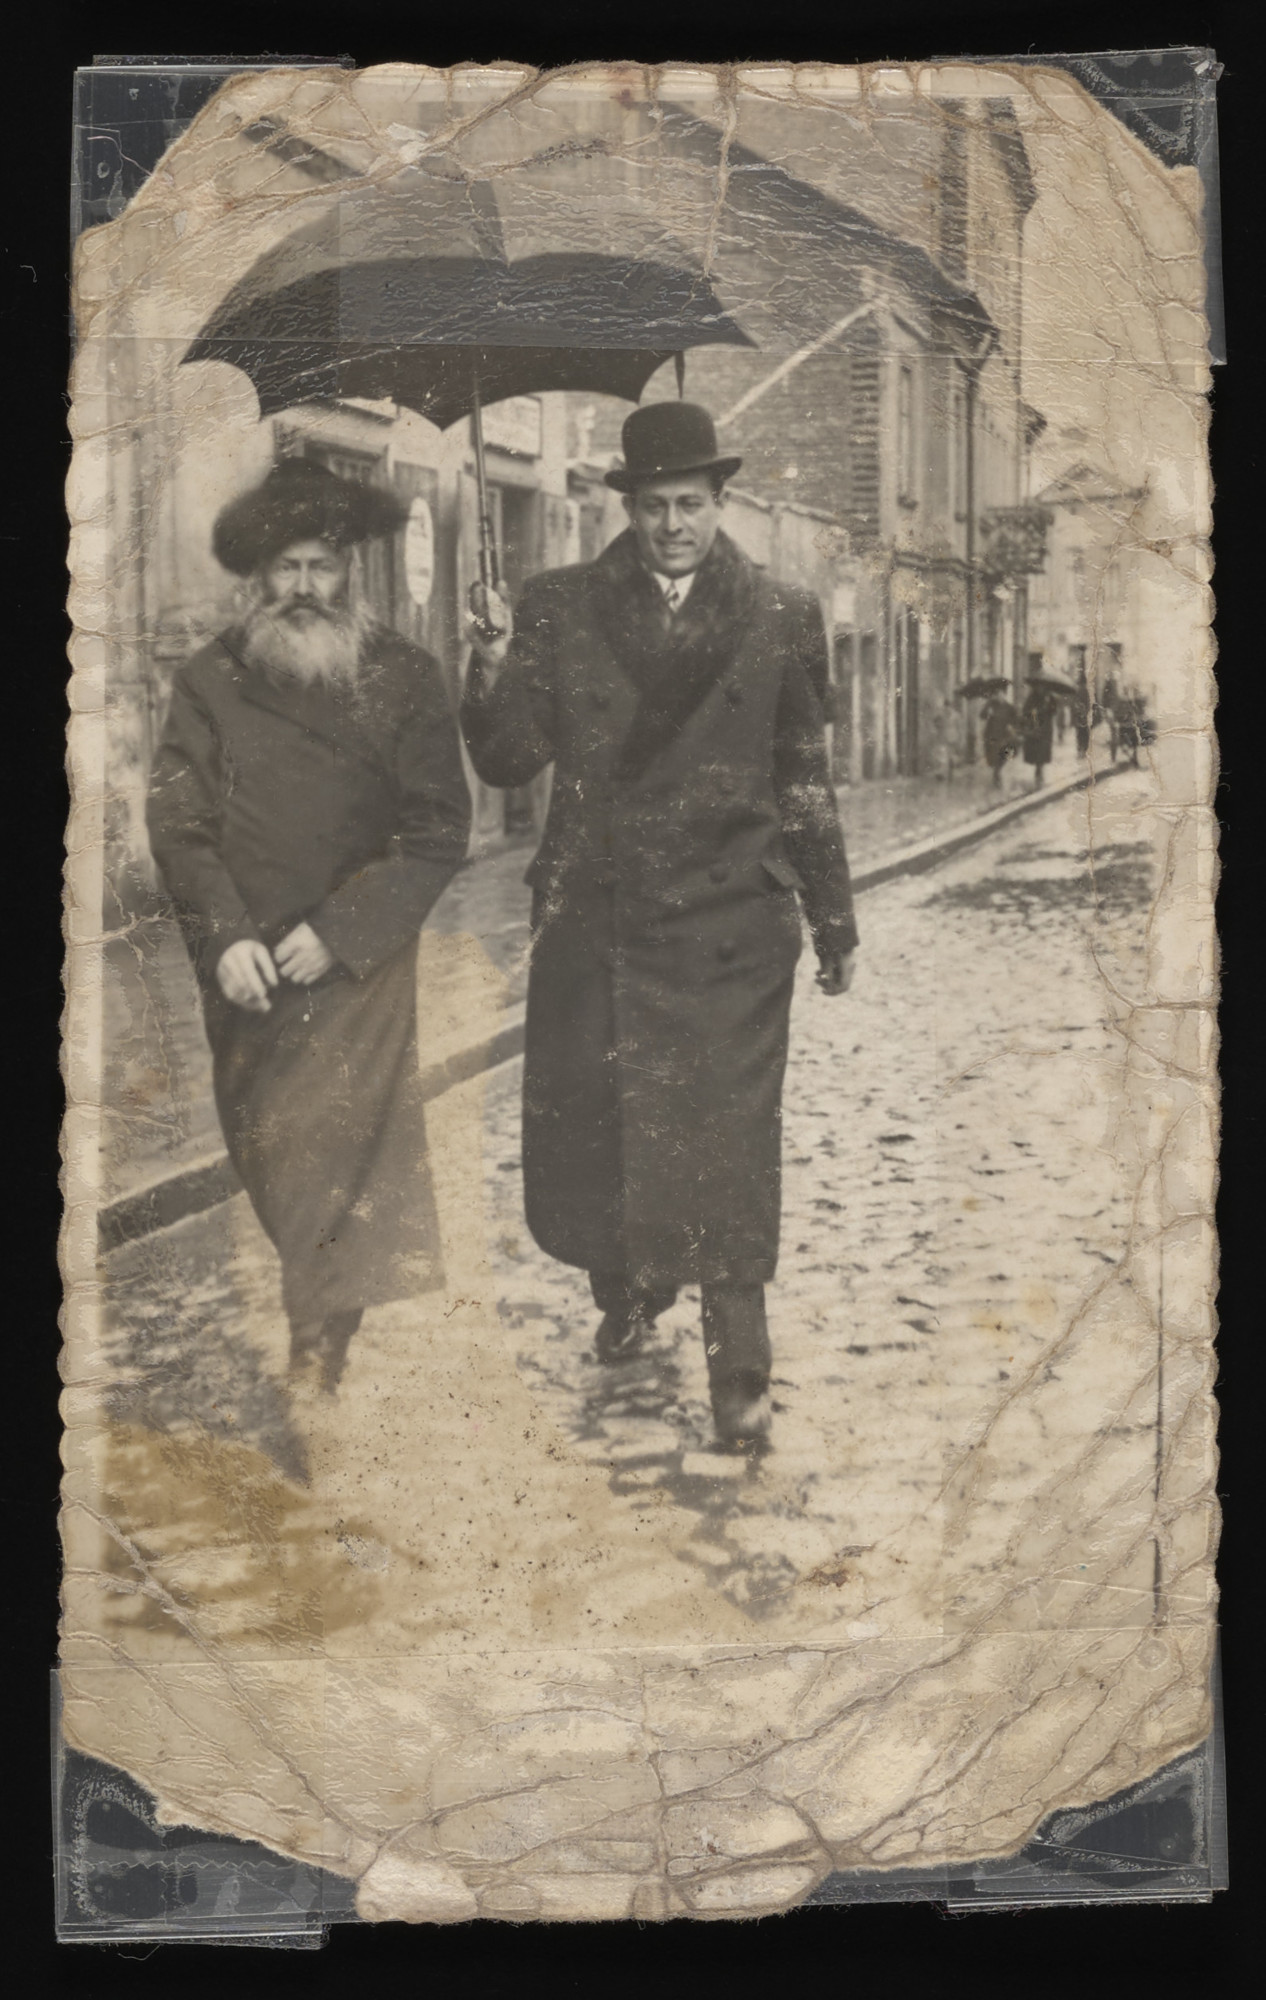 A son dressed in modern clothing holds an umbrella over his father, a Hasidic Jew named Fuchs, to protect him from the rain.